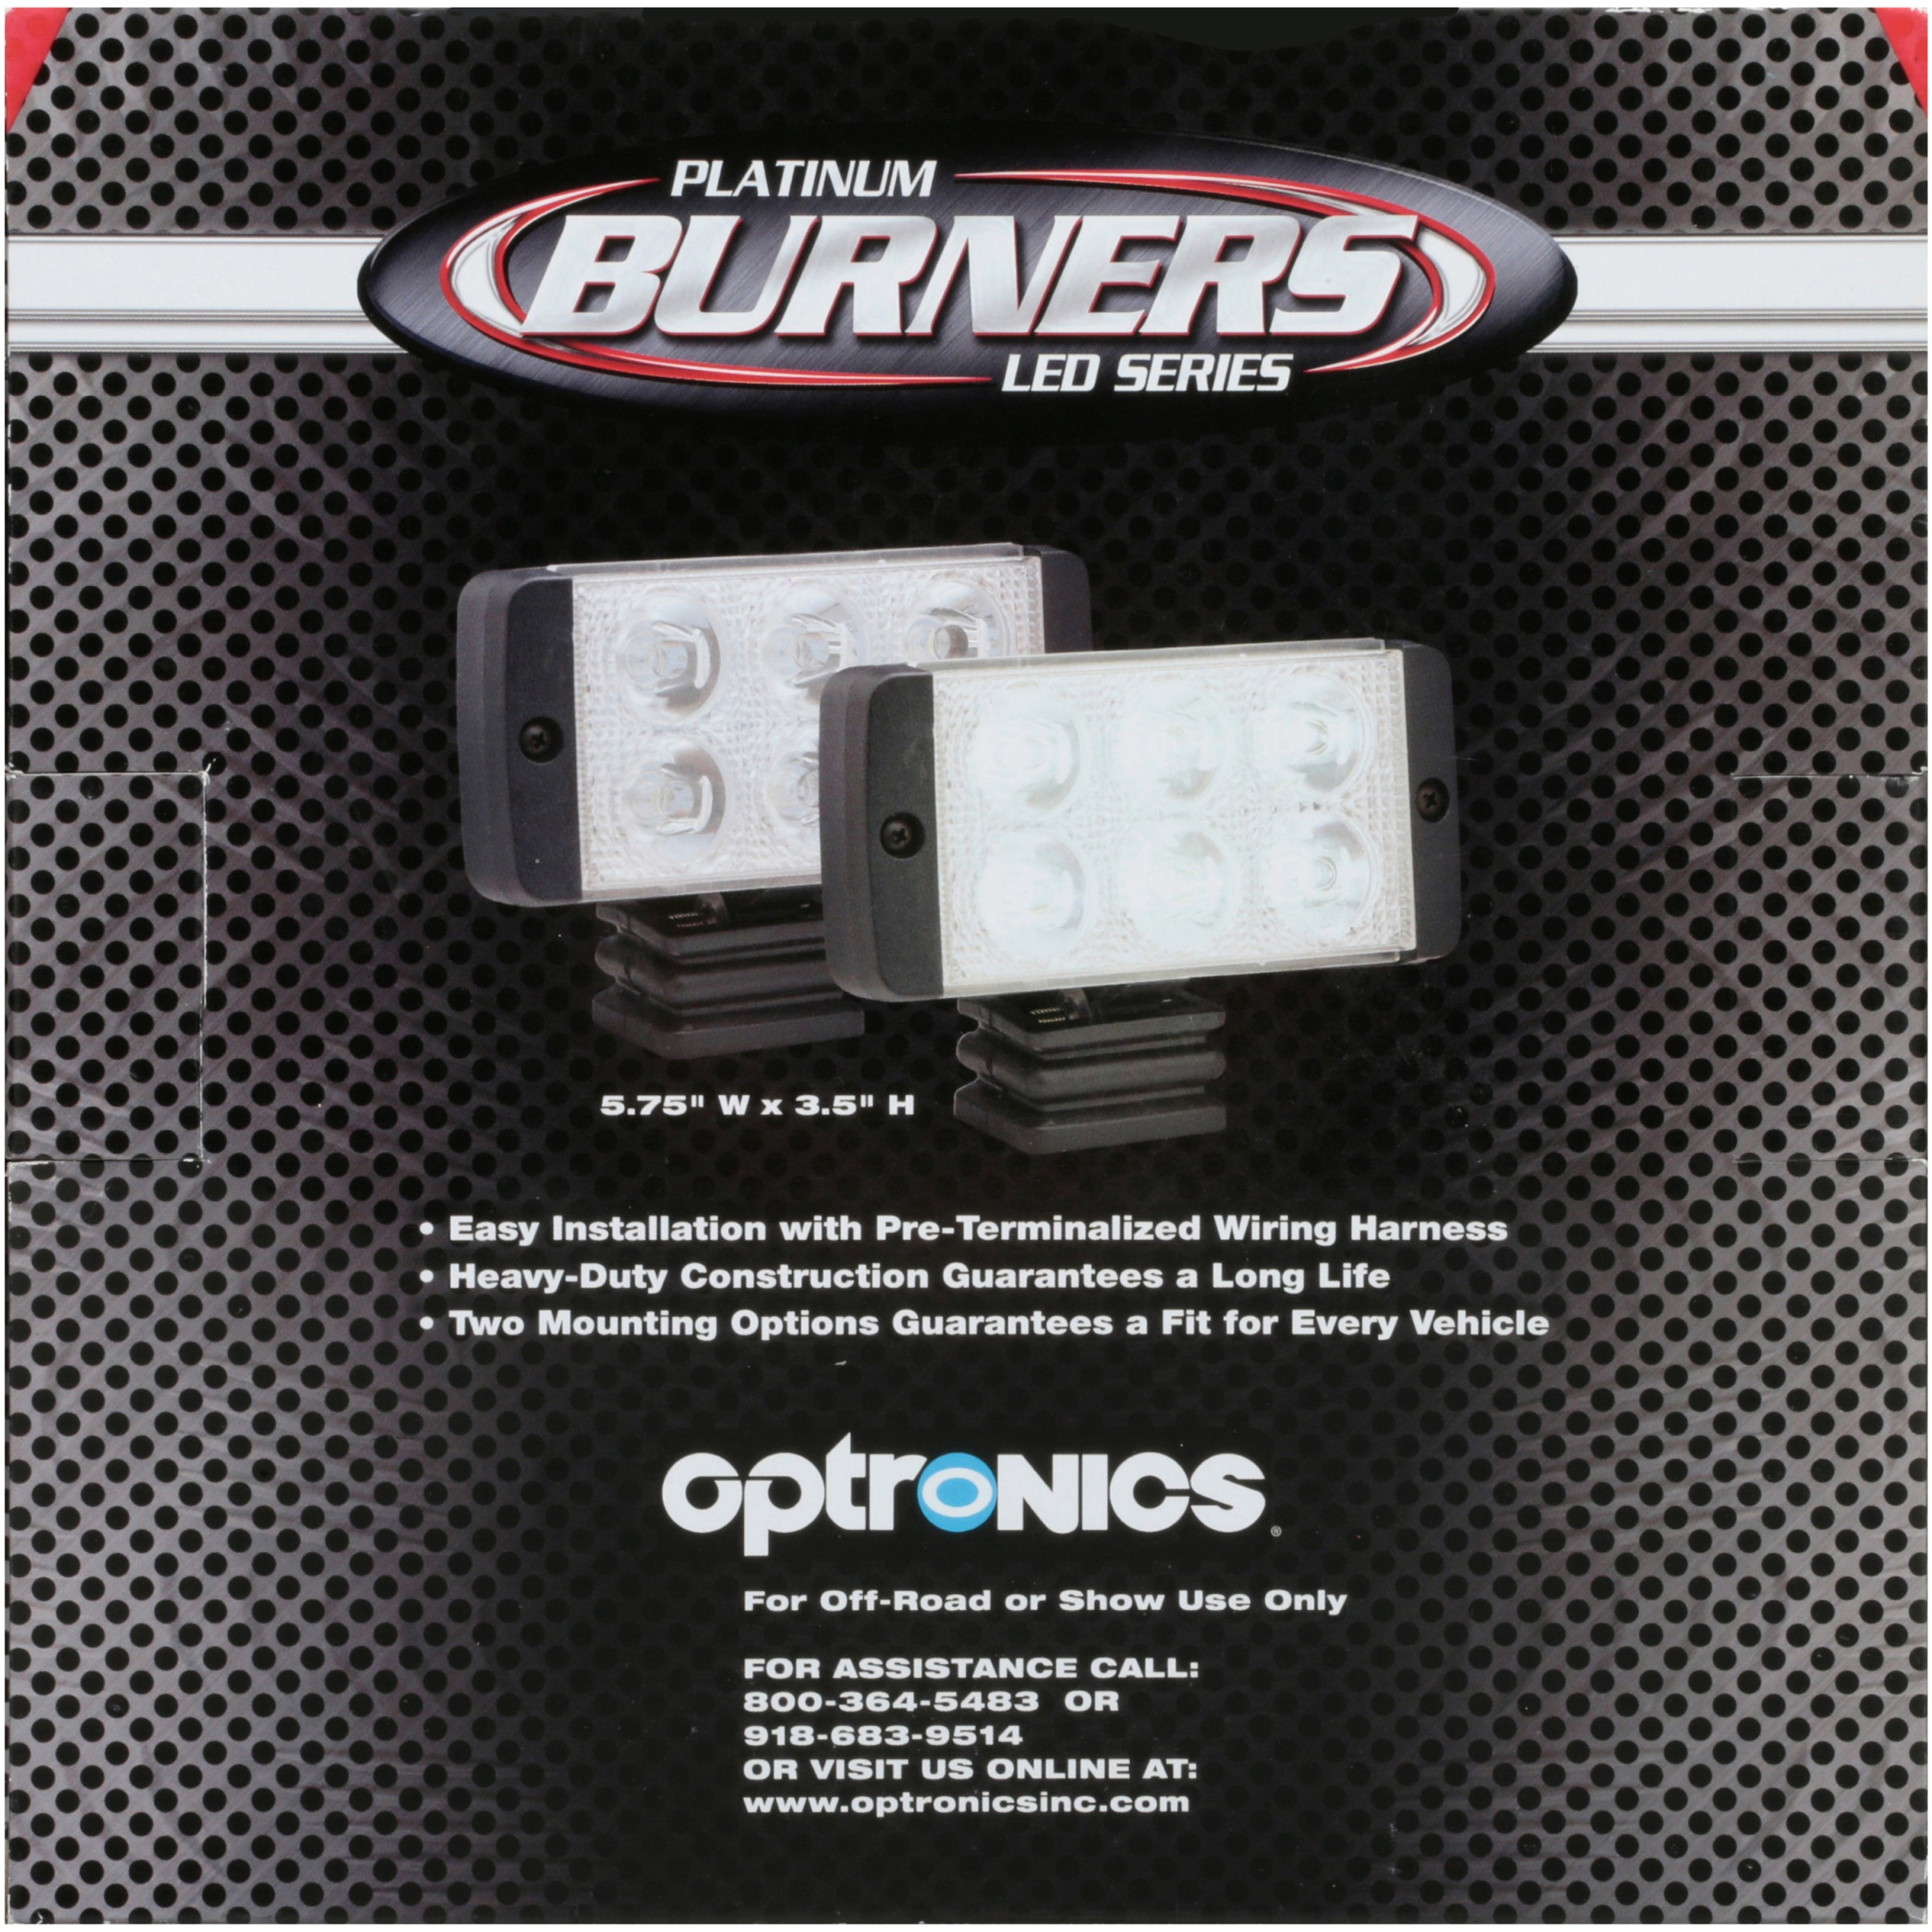 Optronics Platinum Burners Led Series White Racing Lights Wiring